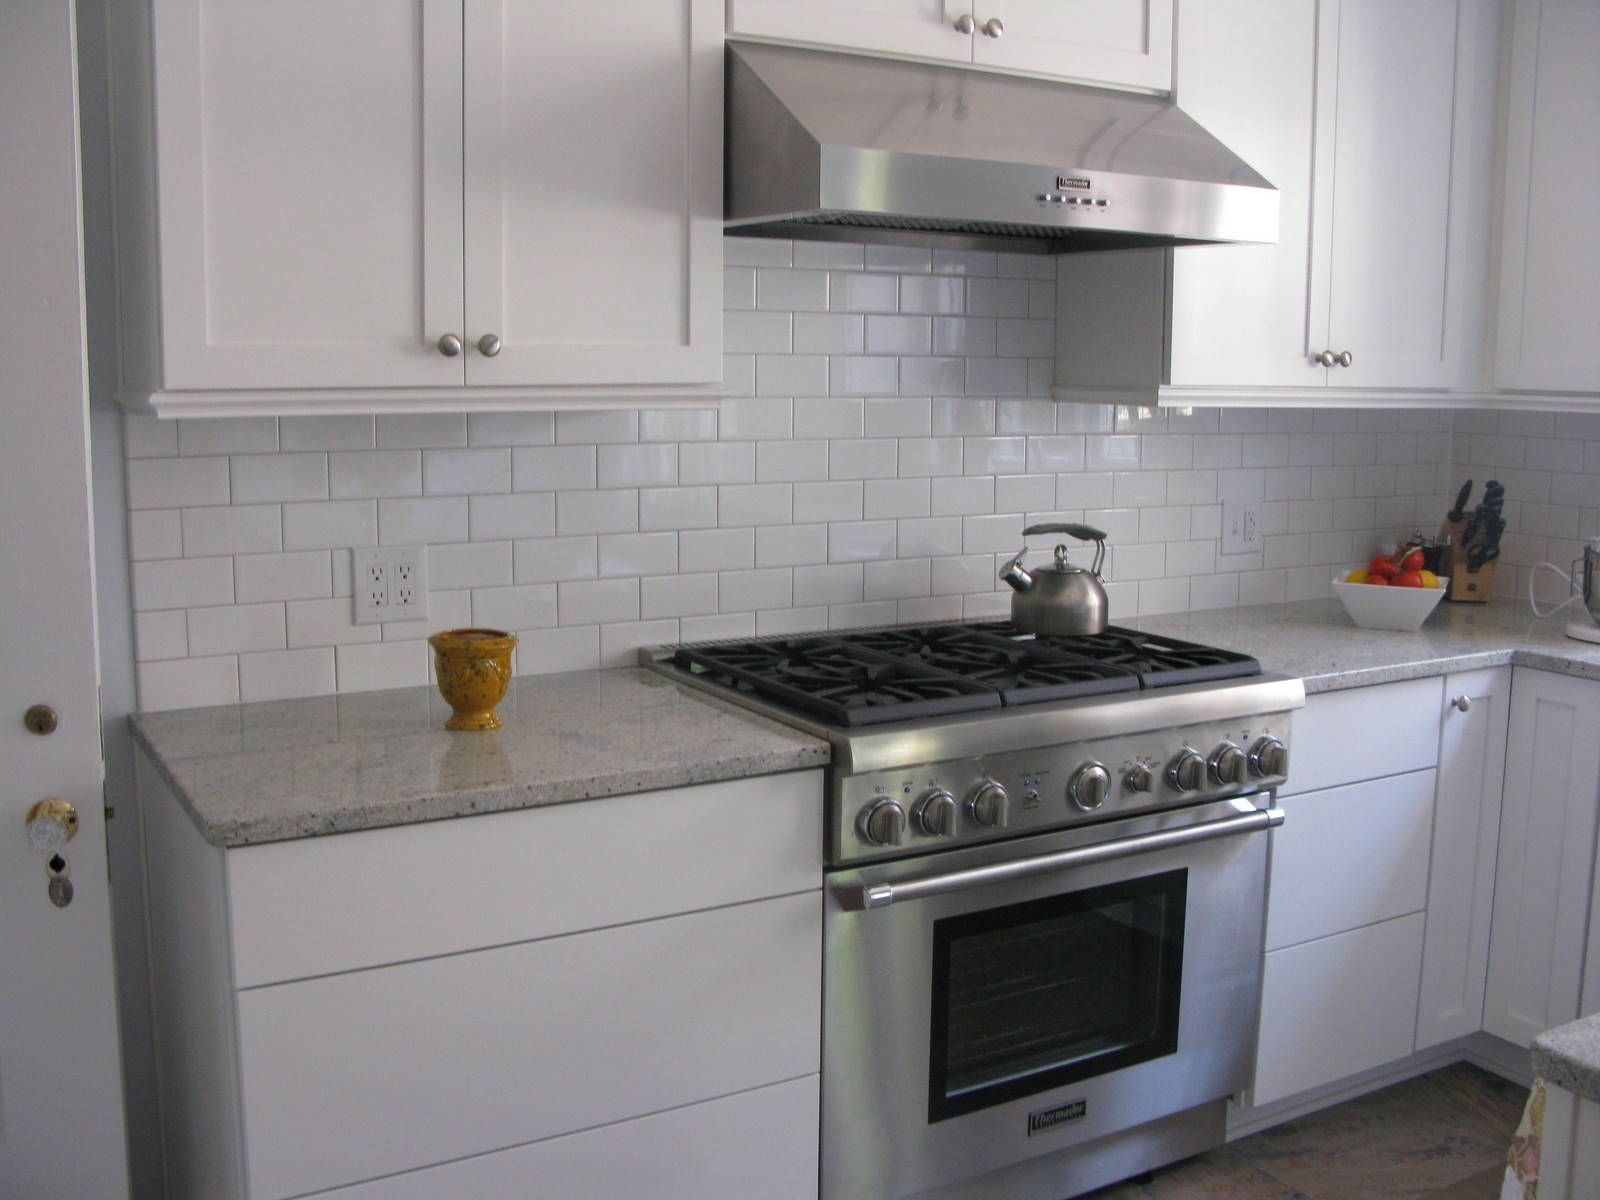 Best Grout For Kitchen Backsplash